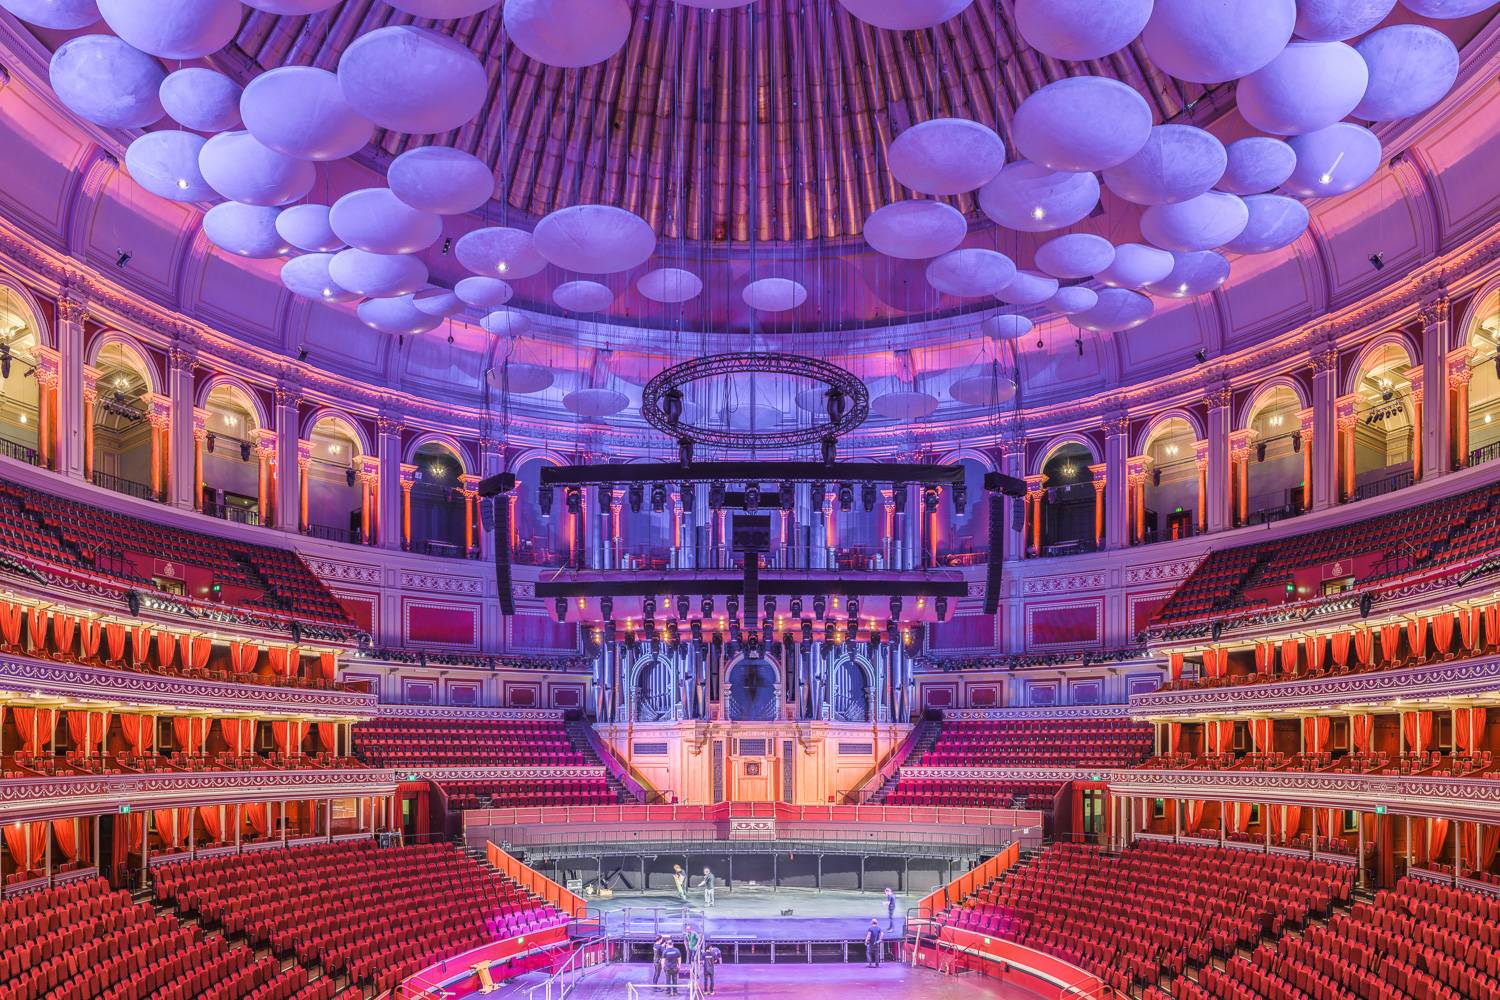 Immagine di una vista centrale del Royal Albert Hall in toni di viola.